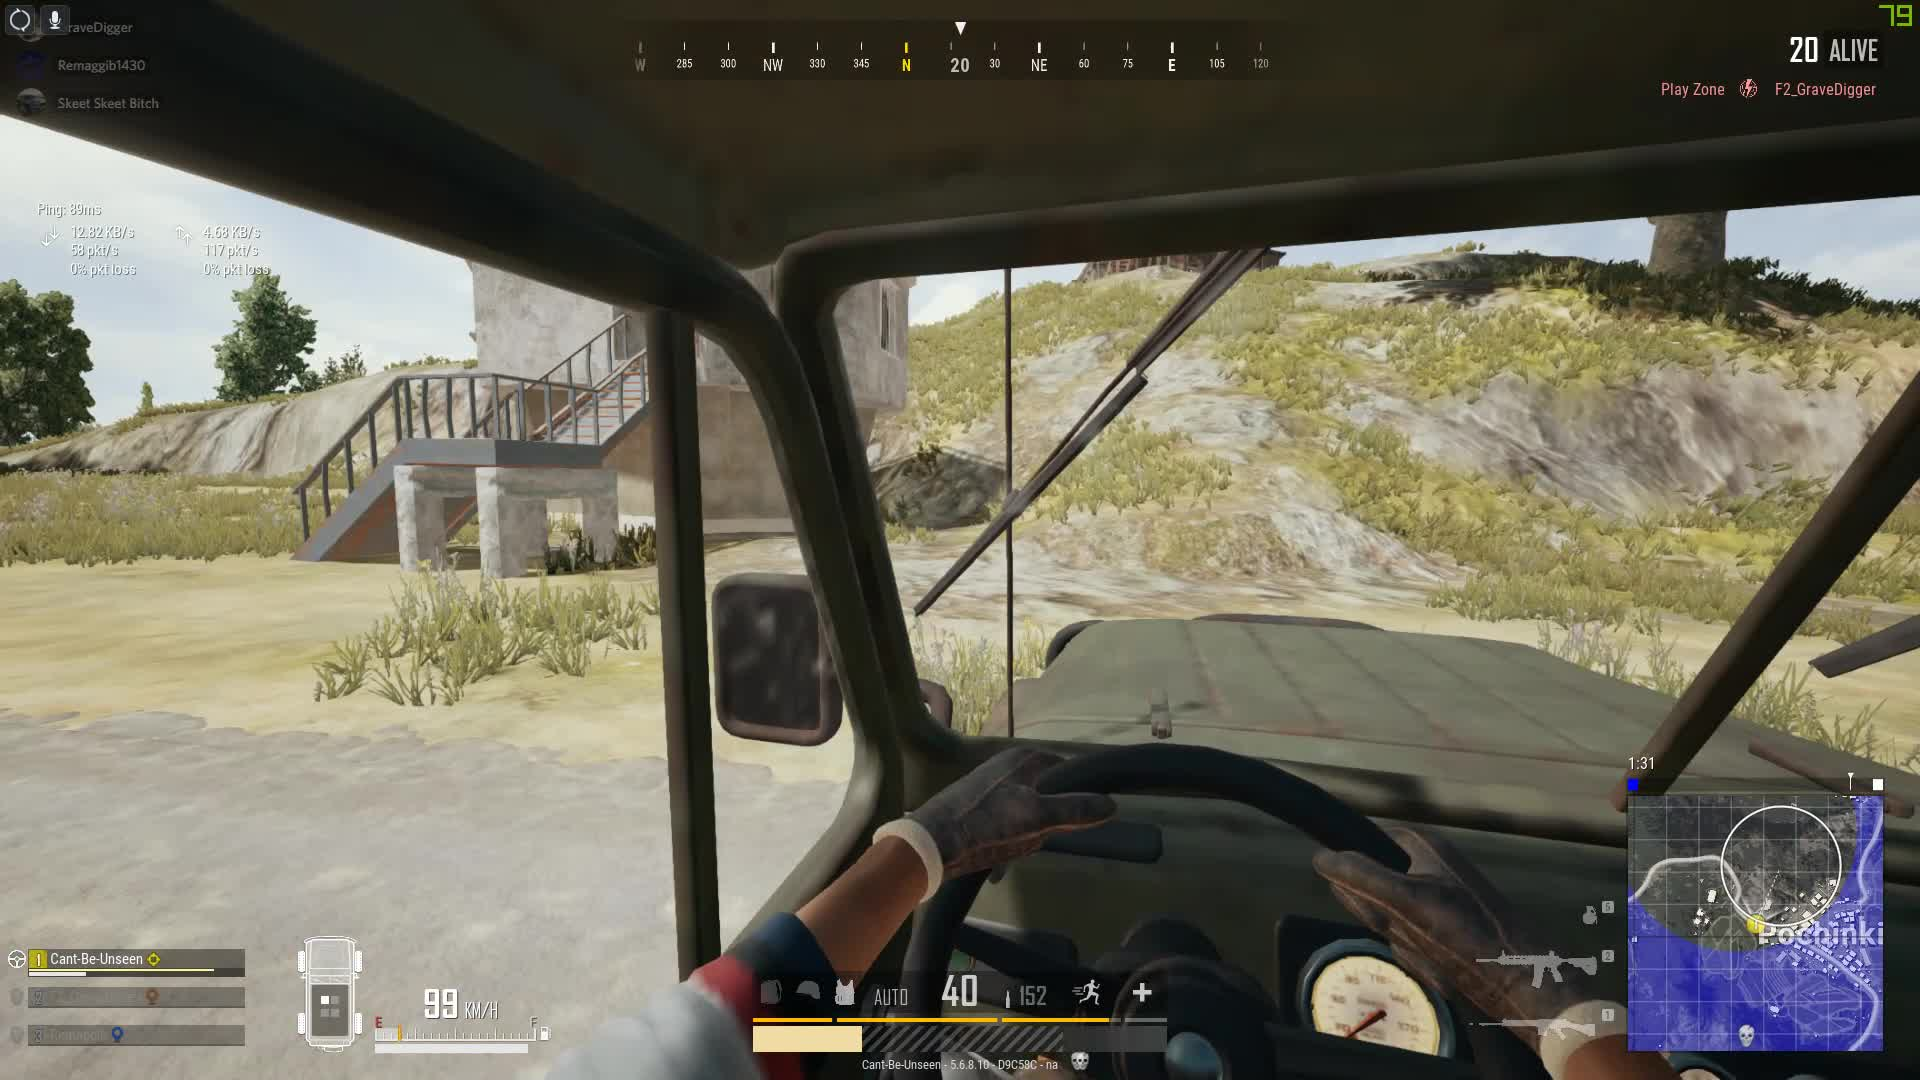 pubattlegrounds, pubg, When the UAZ doesn't like the way you drive, Kicks you out, and kills you ... GIFs